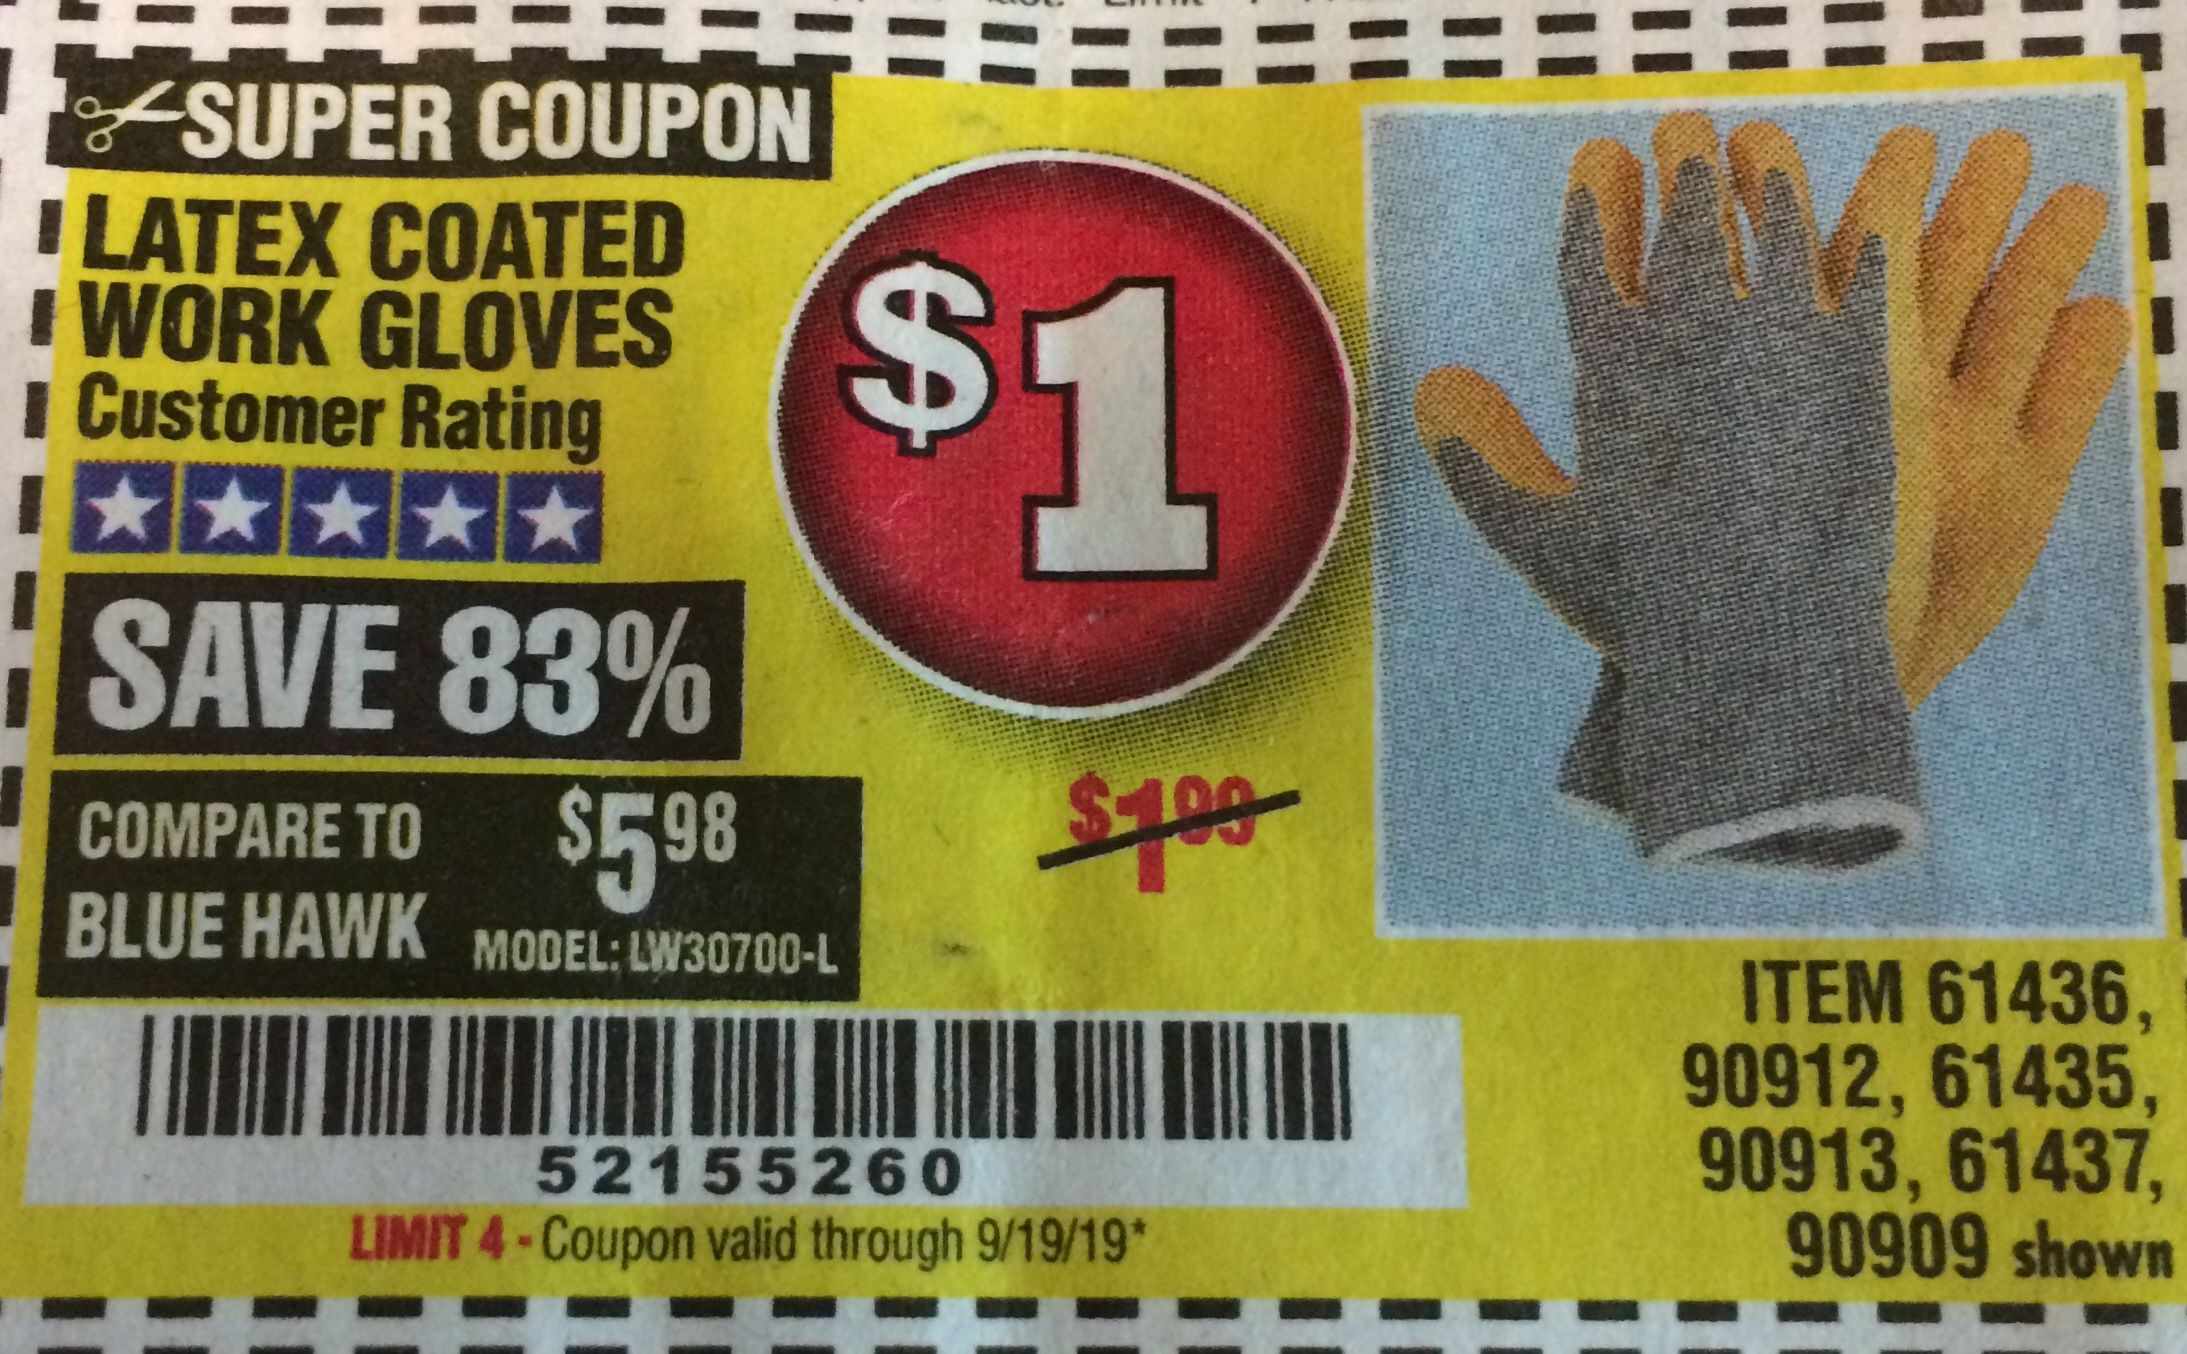 Harbor Freight HARDY LATEX COATED WORK GLOVES coupon